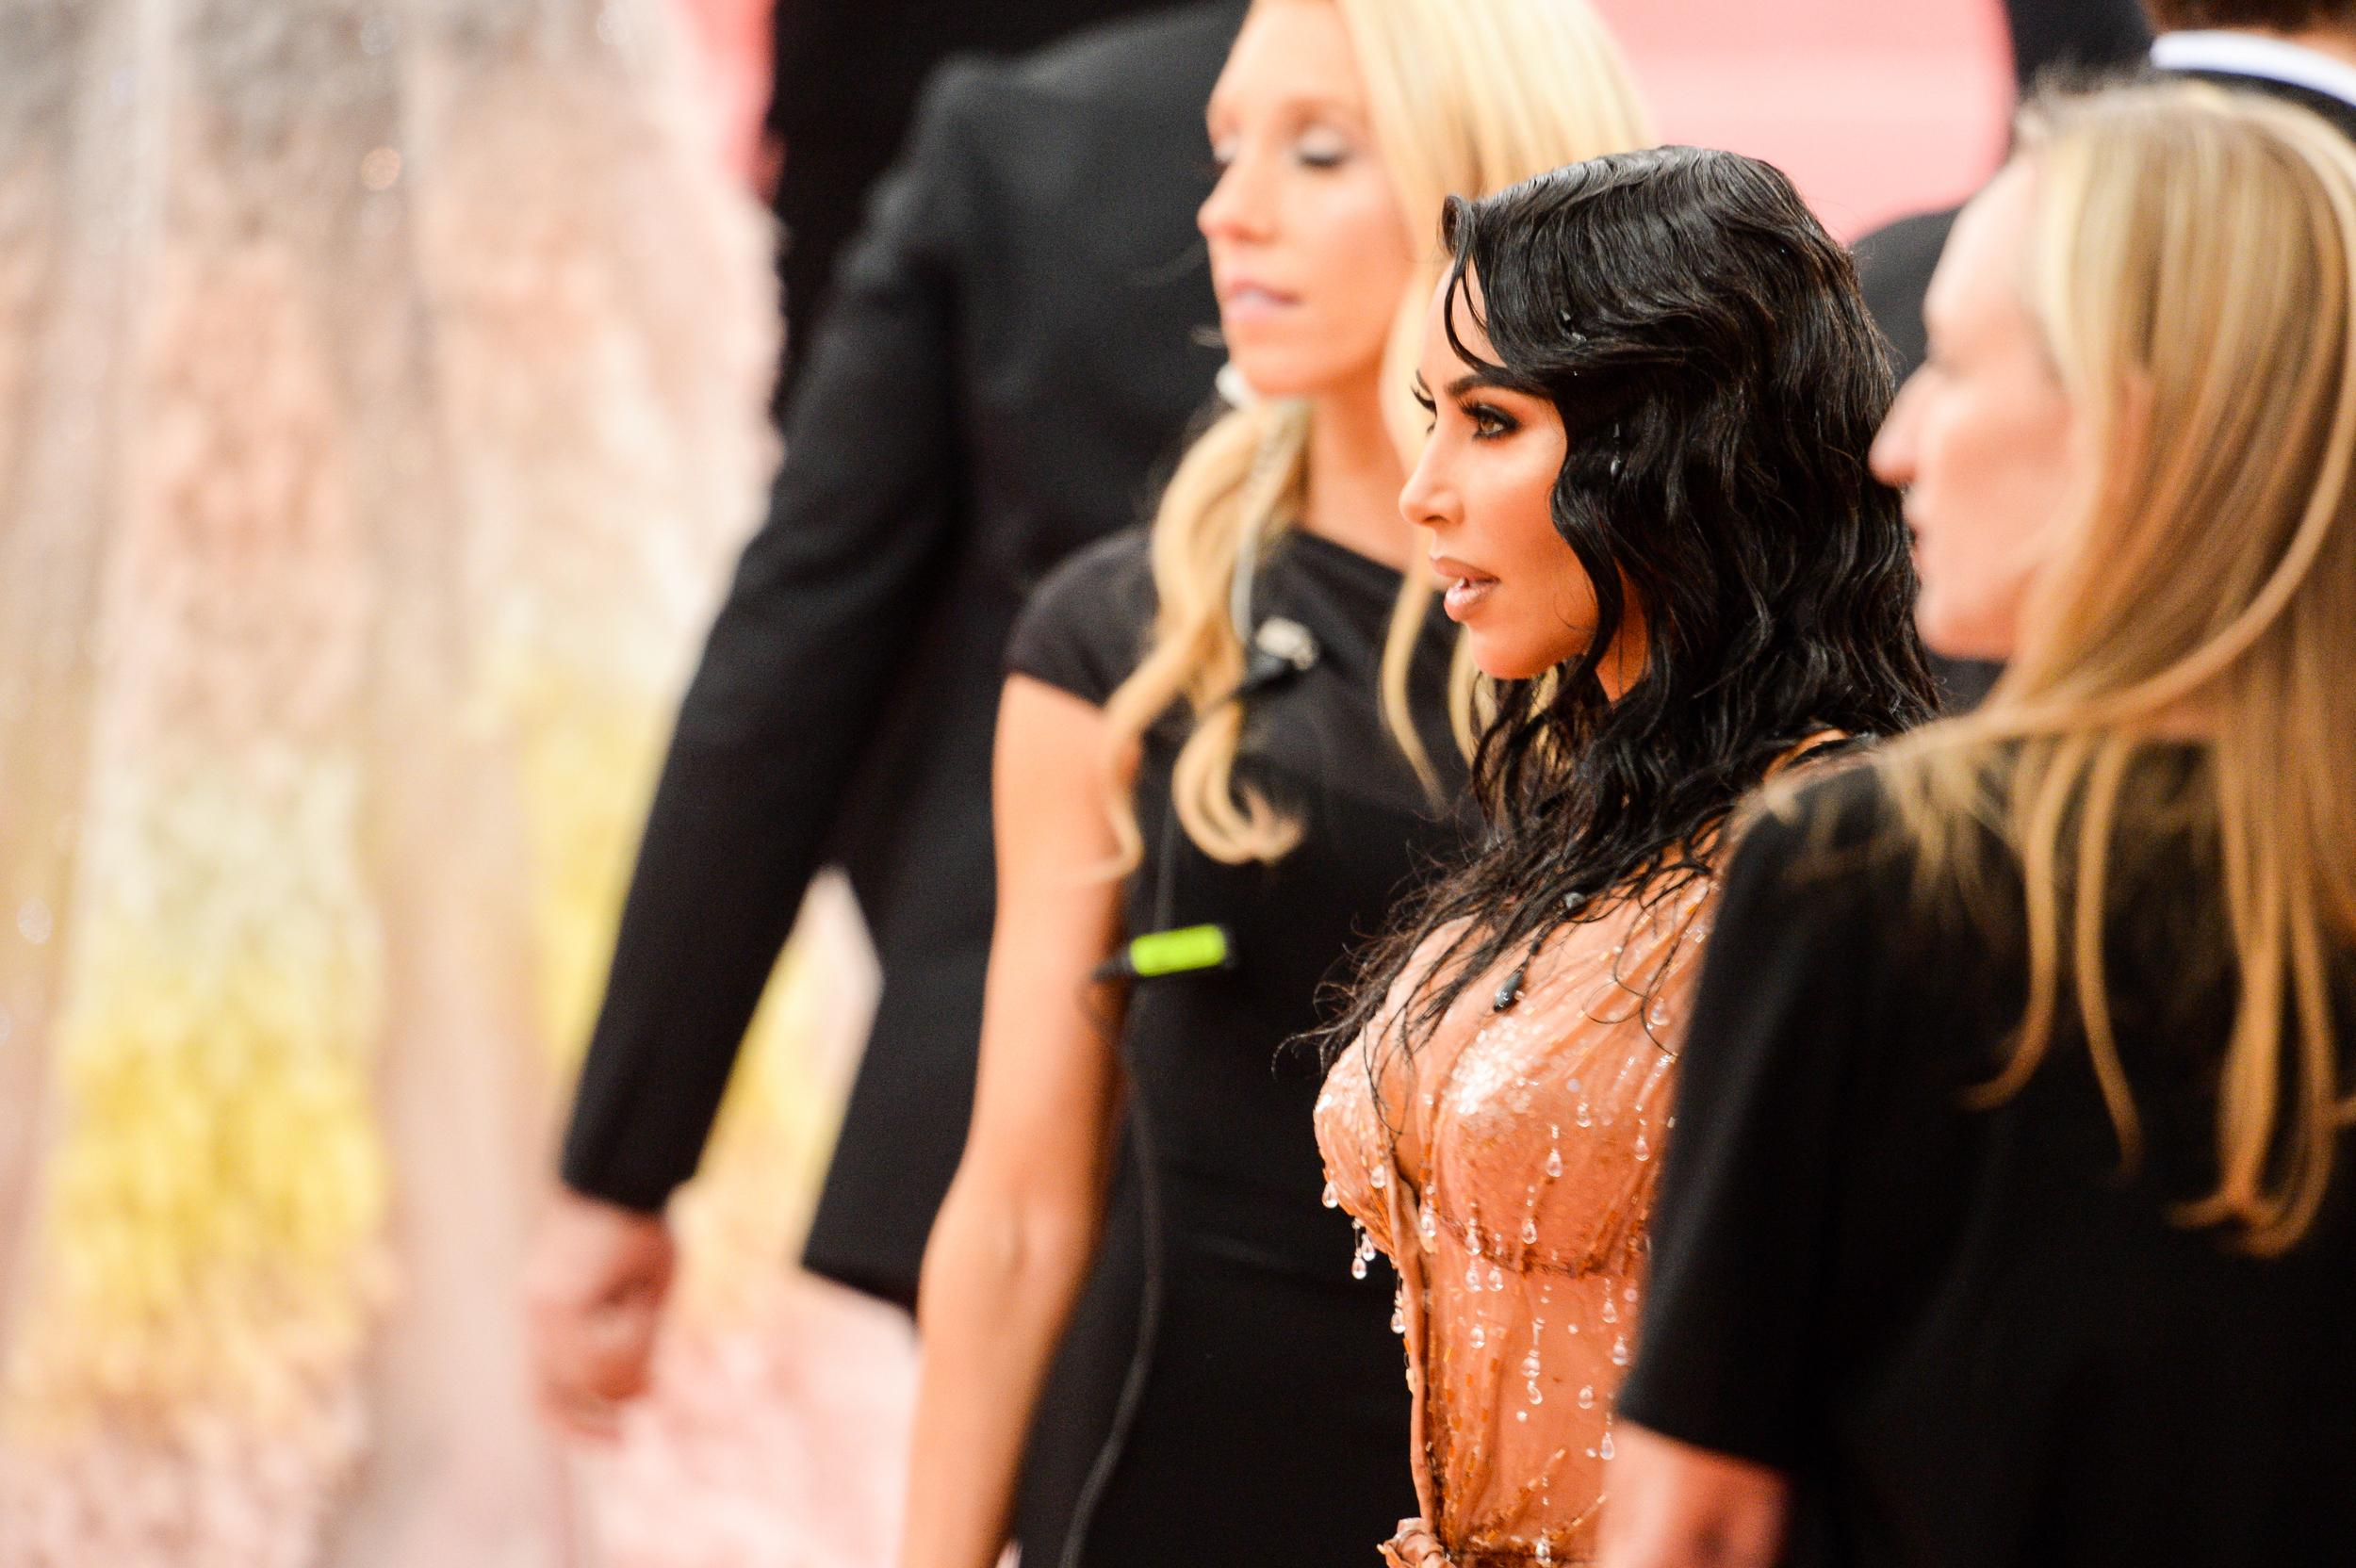 NEW YORK, NY - MAY 06:  Media personality Kim Kardashian attends The 2019 Met Gala Celebrating Camp: Notes on Fashion at Metropolitan Museum of Art on May 6, 2019 in New York City.  (Photo by Ray Tamarra/GC Images)